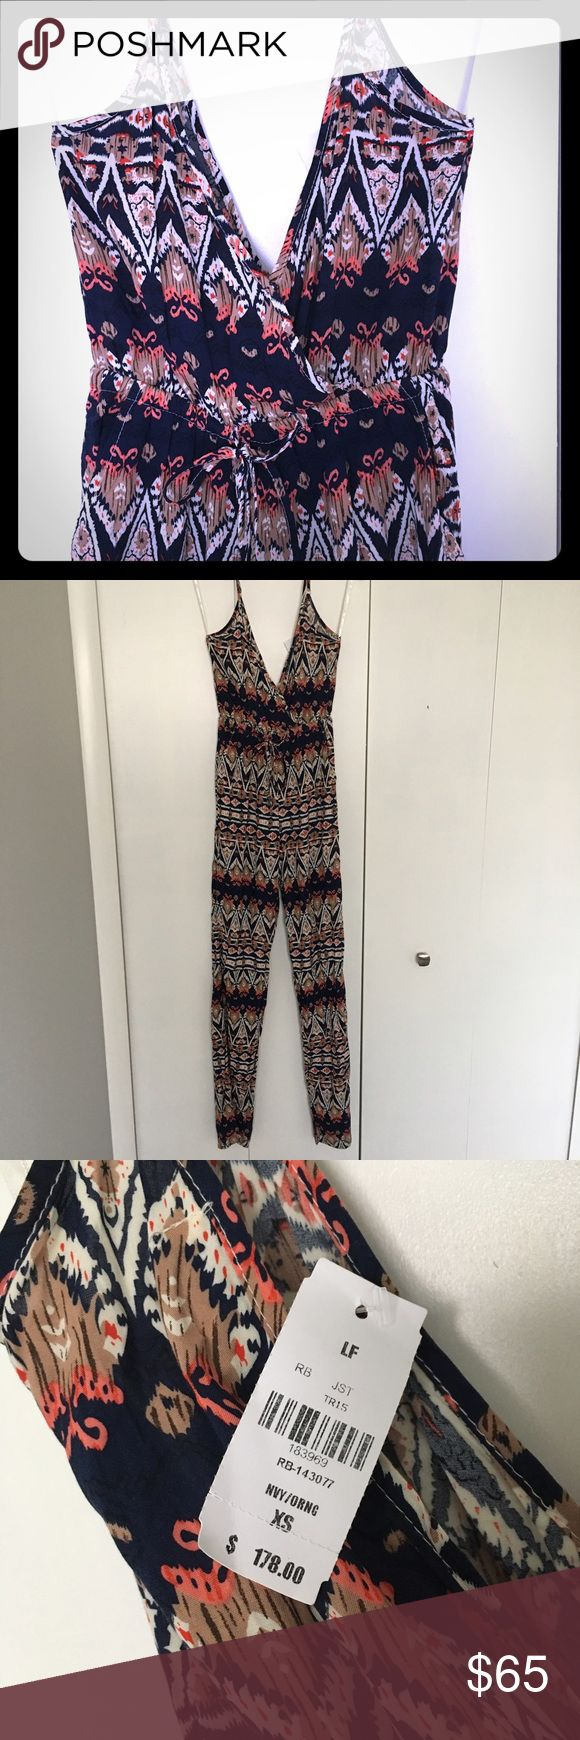 NWT LF Festival Jumpsuit Adorable Aztec patterned jumpsuit with low V-neck and front and back. Elastic at the ankles. New with tags! LF Dresses